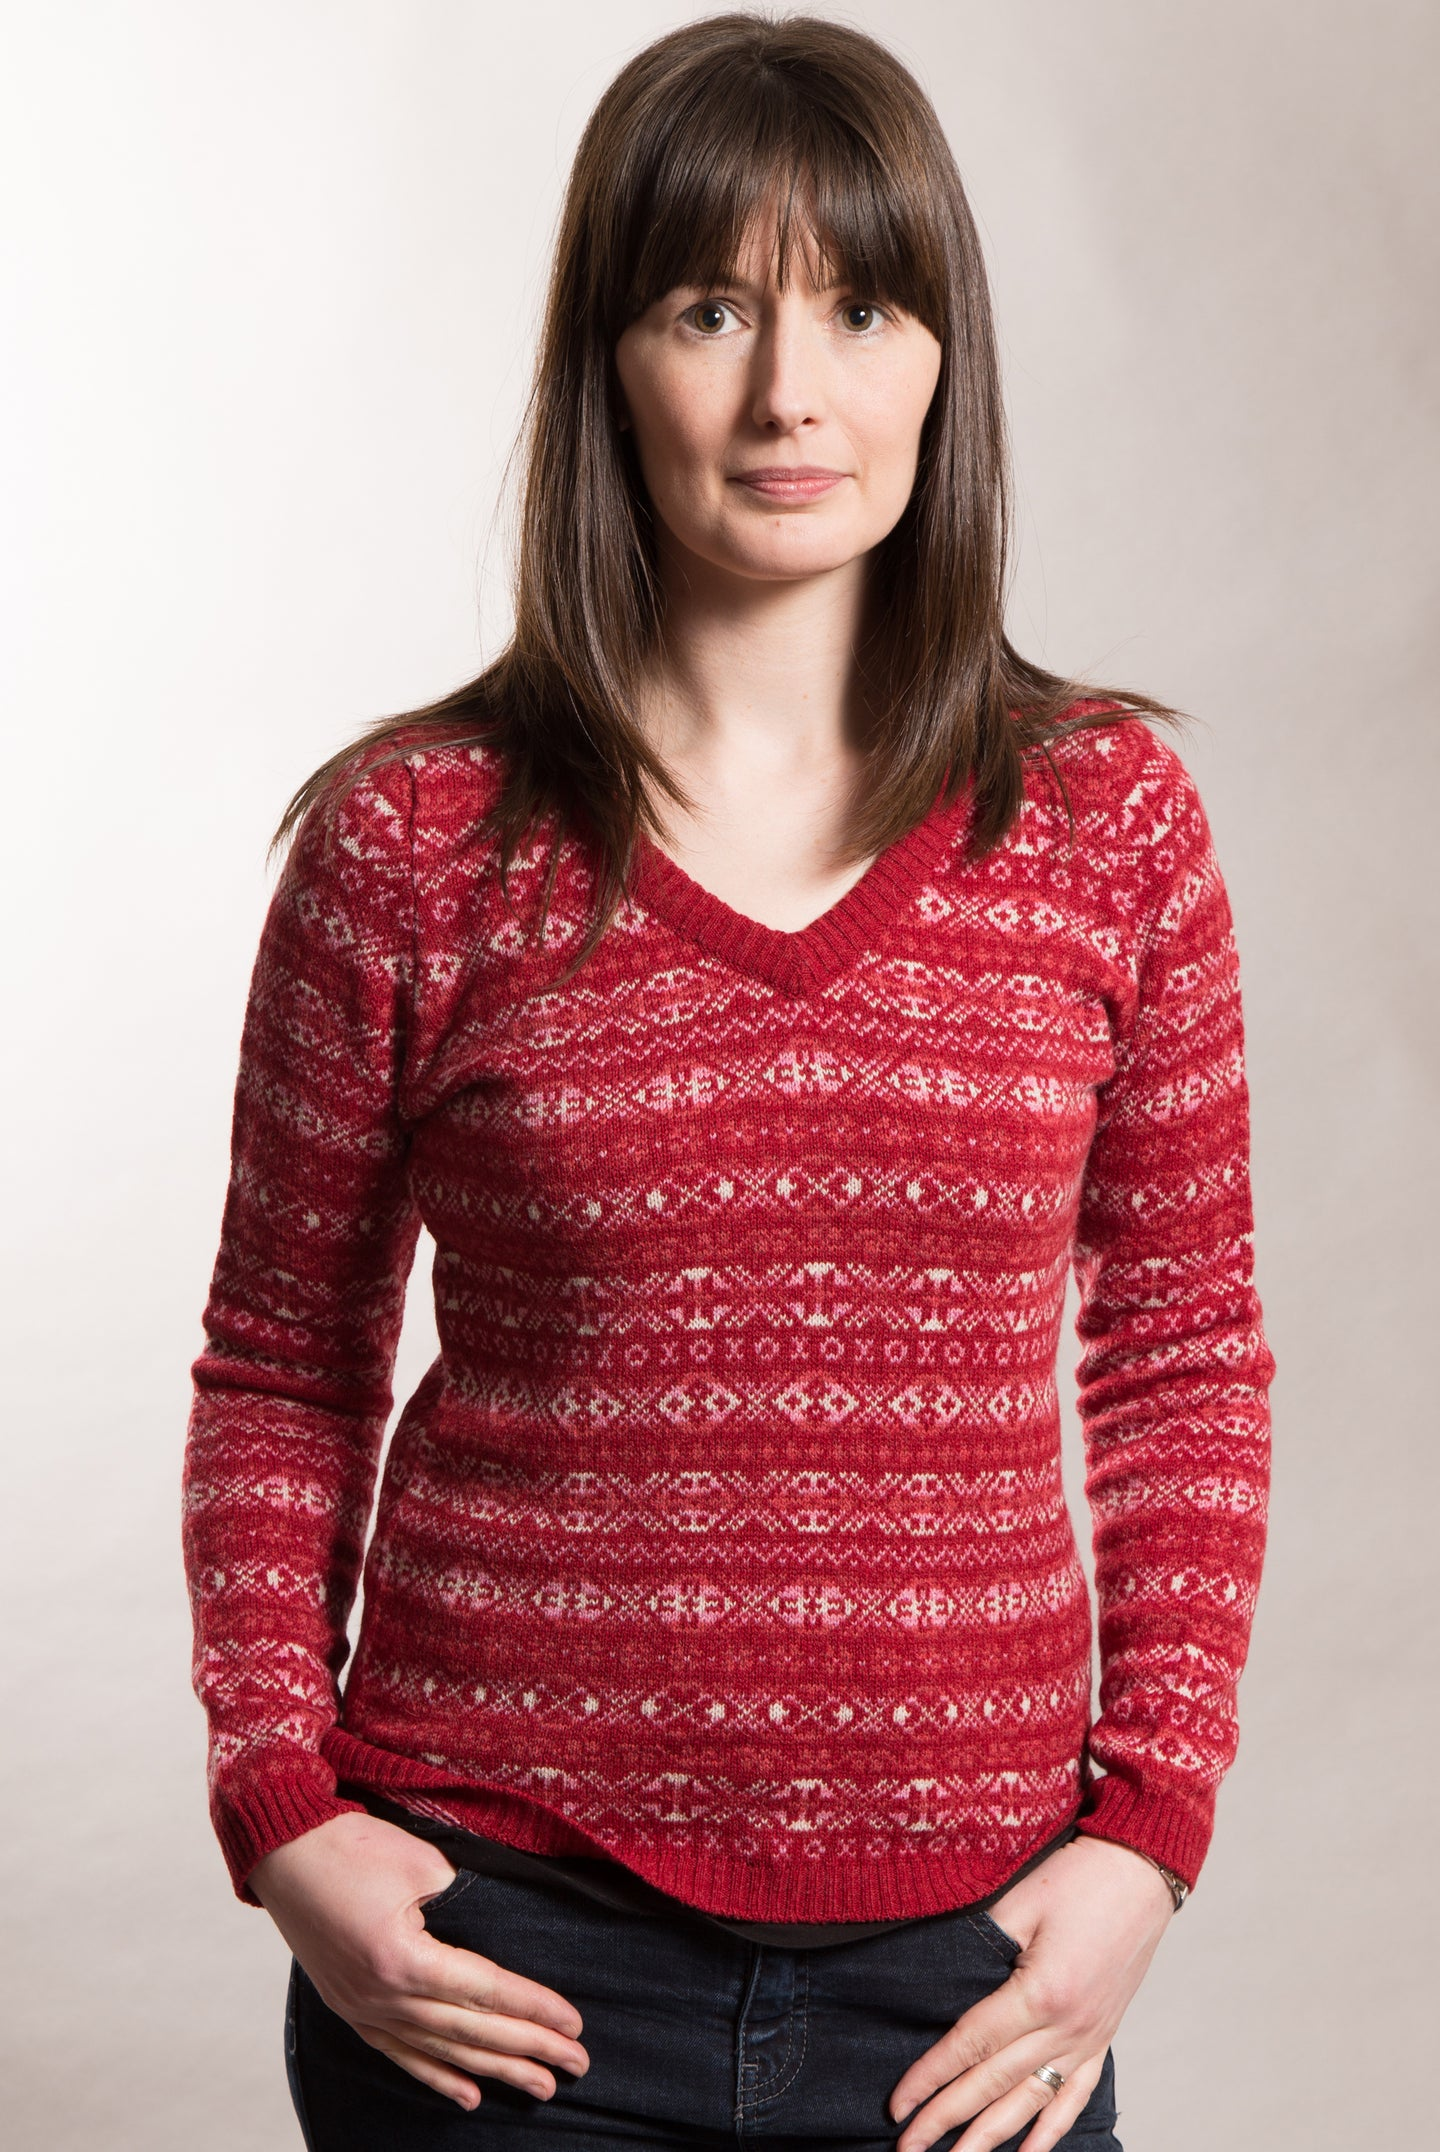 Aunty Mays Jumper V-Neck